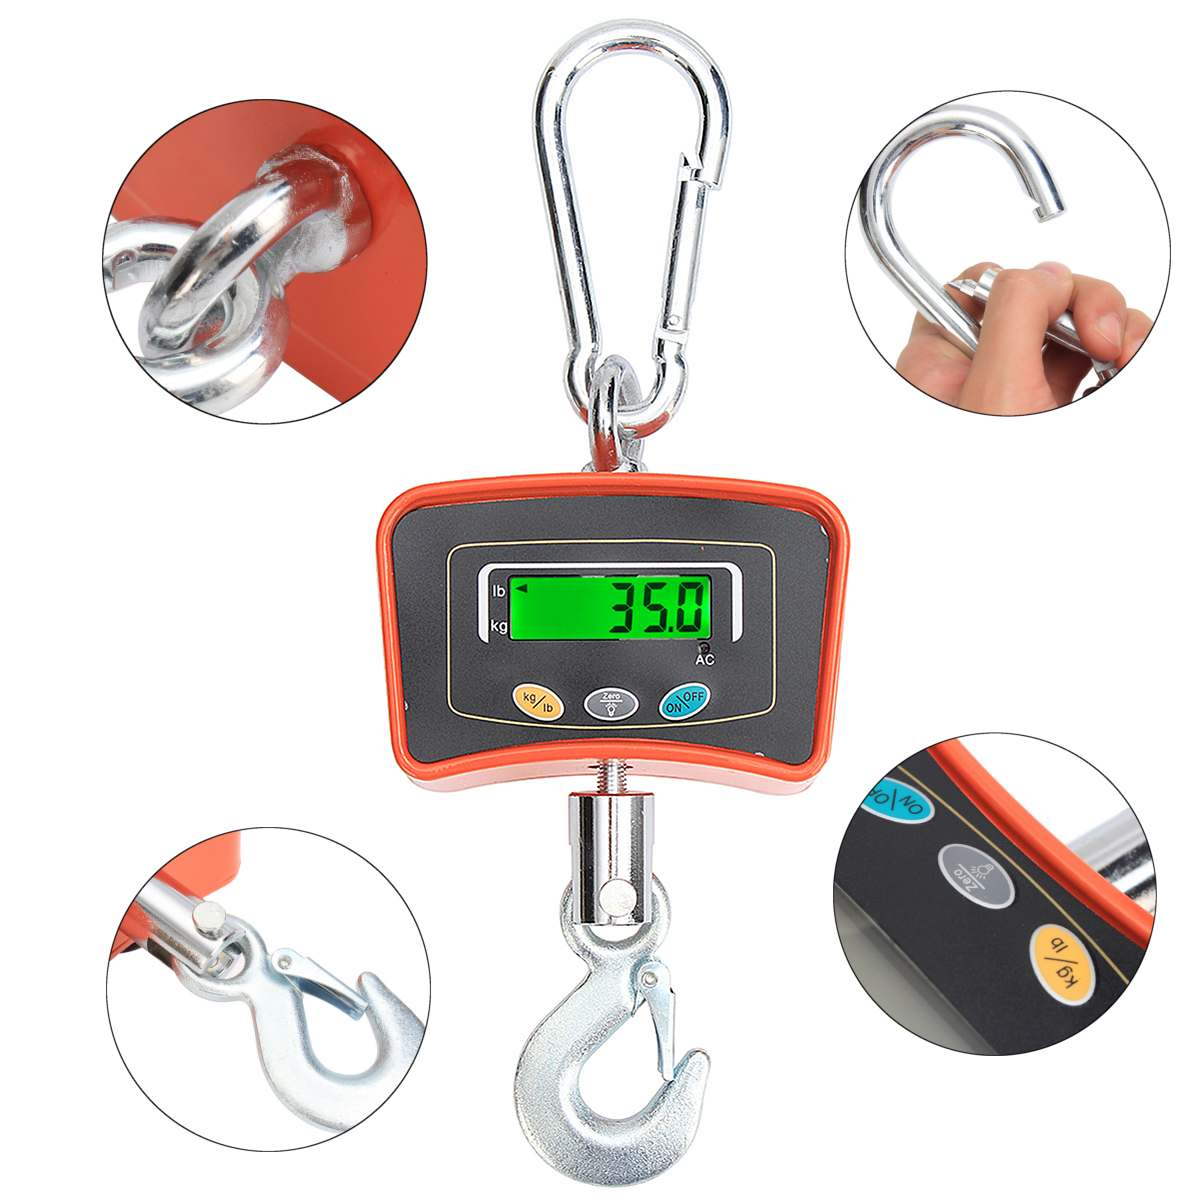 500KG/1100 LBS Digital Crane Scale 110V/220V Heavy Industrial Hanging Scale Electronic Weighing Balance Tools - 3